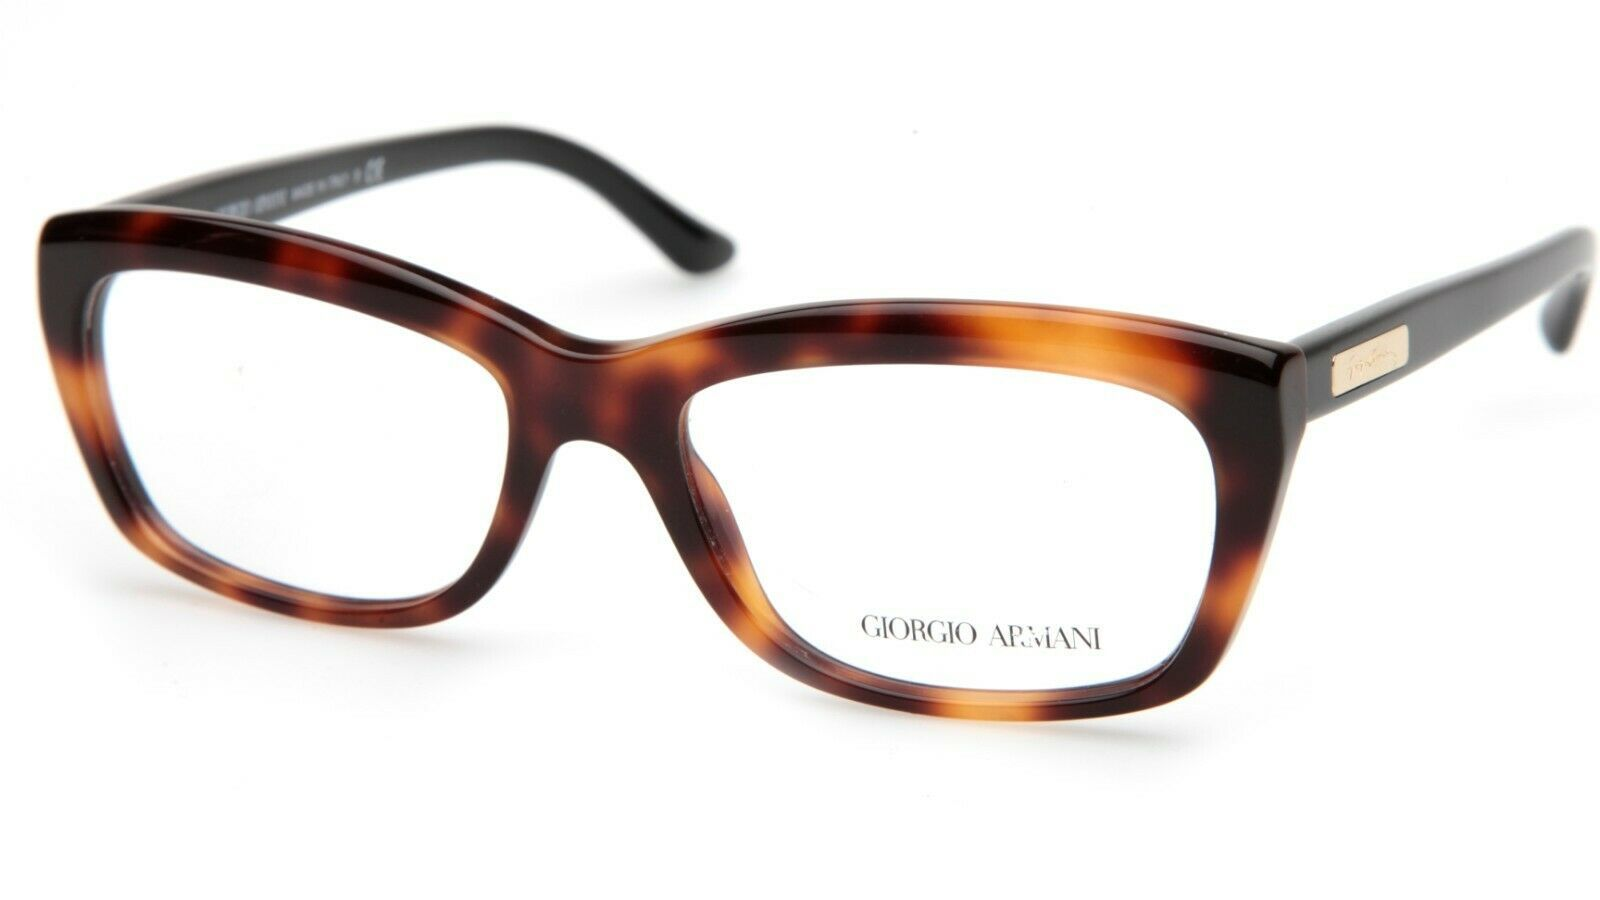 Primary image for New GIORGIO ARMANI AR7032 5022 Havana EYEGLASSES FRAME 53-17-140mm B34mm Italy